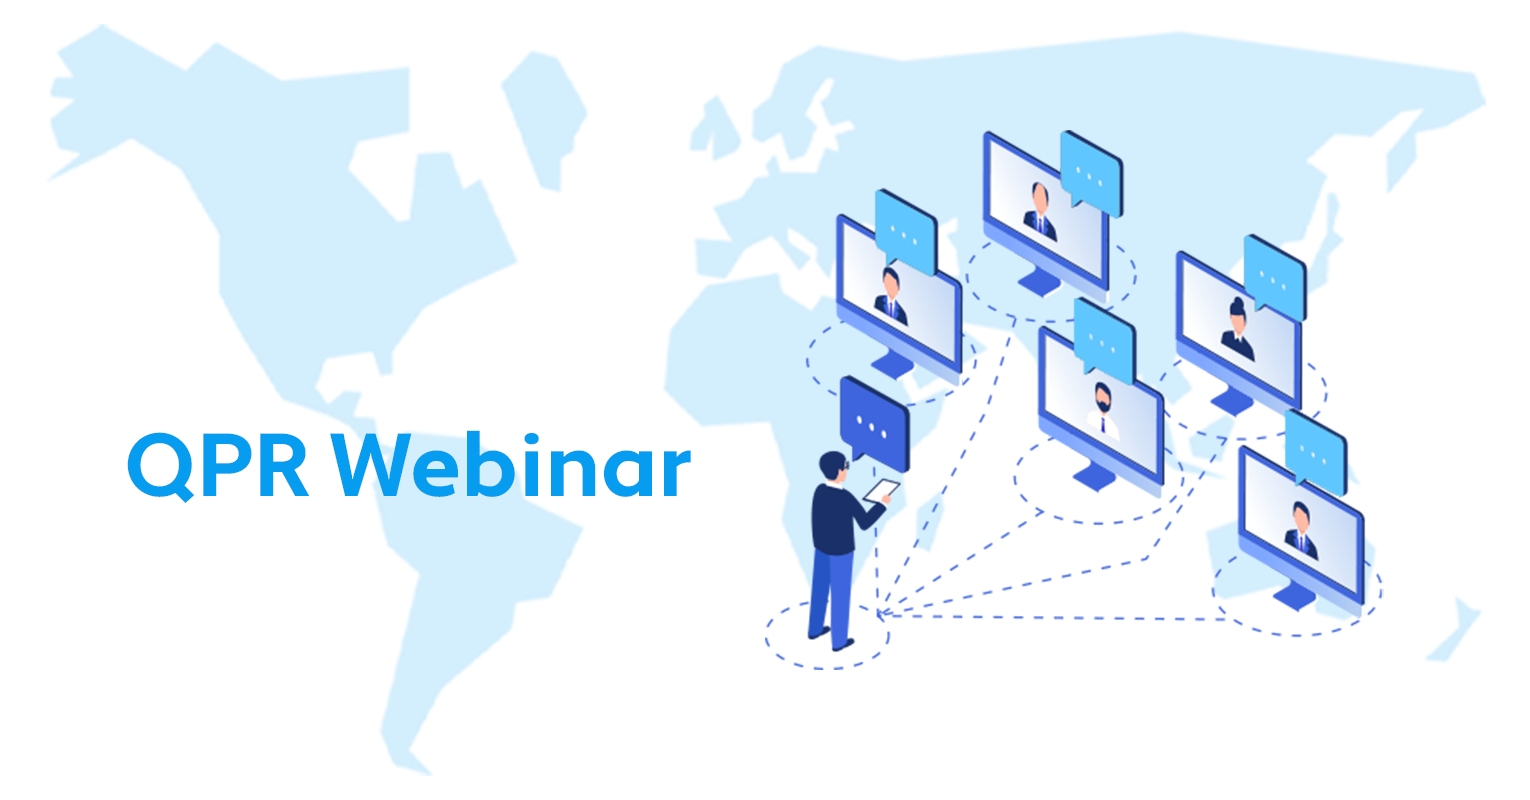 QPR-webinar-white-background+icon